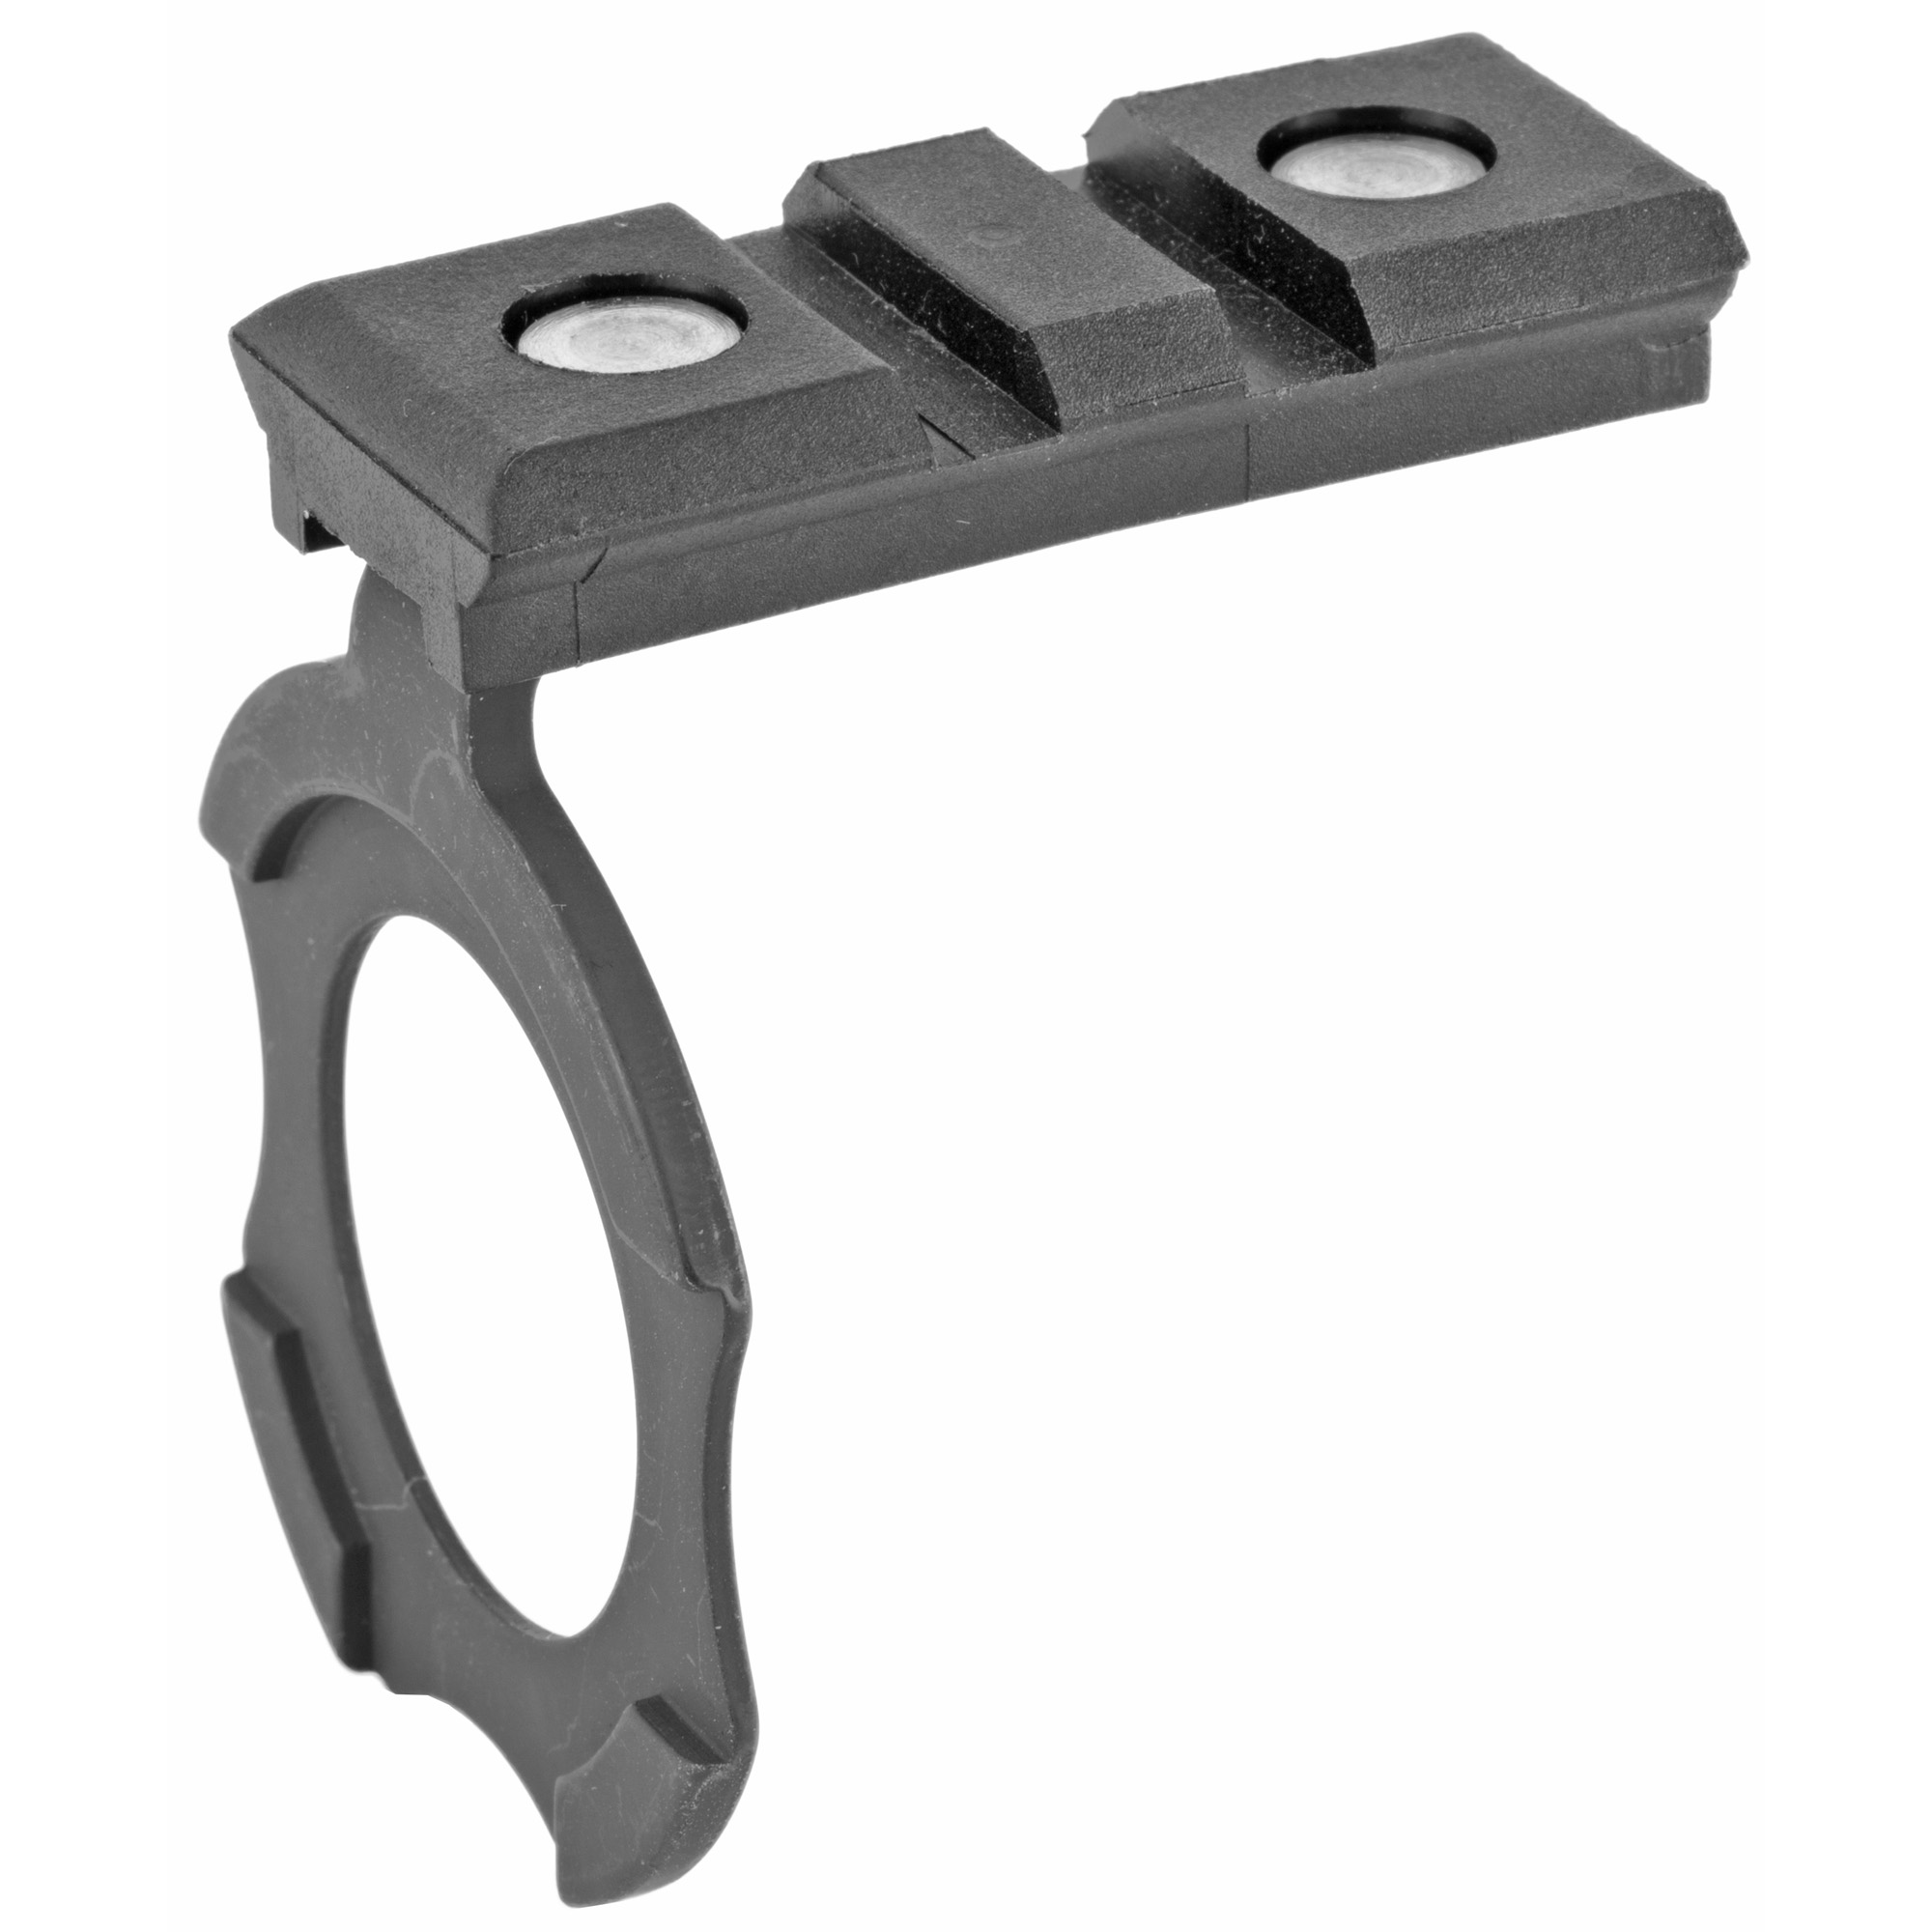 This Streamlight mount allows the installation of a tactical light on the magazine tube of your Remington 870.